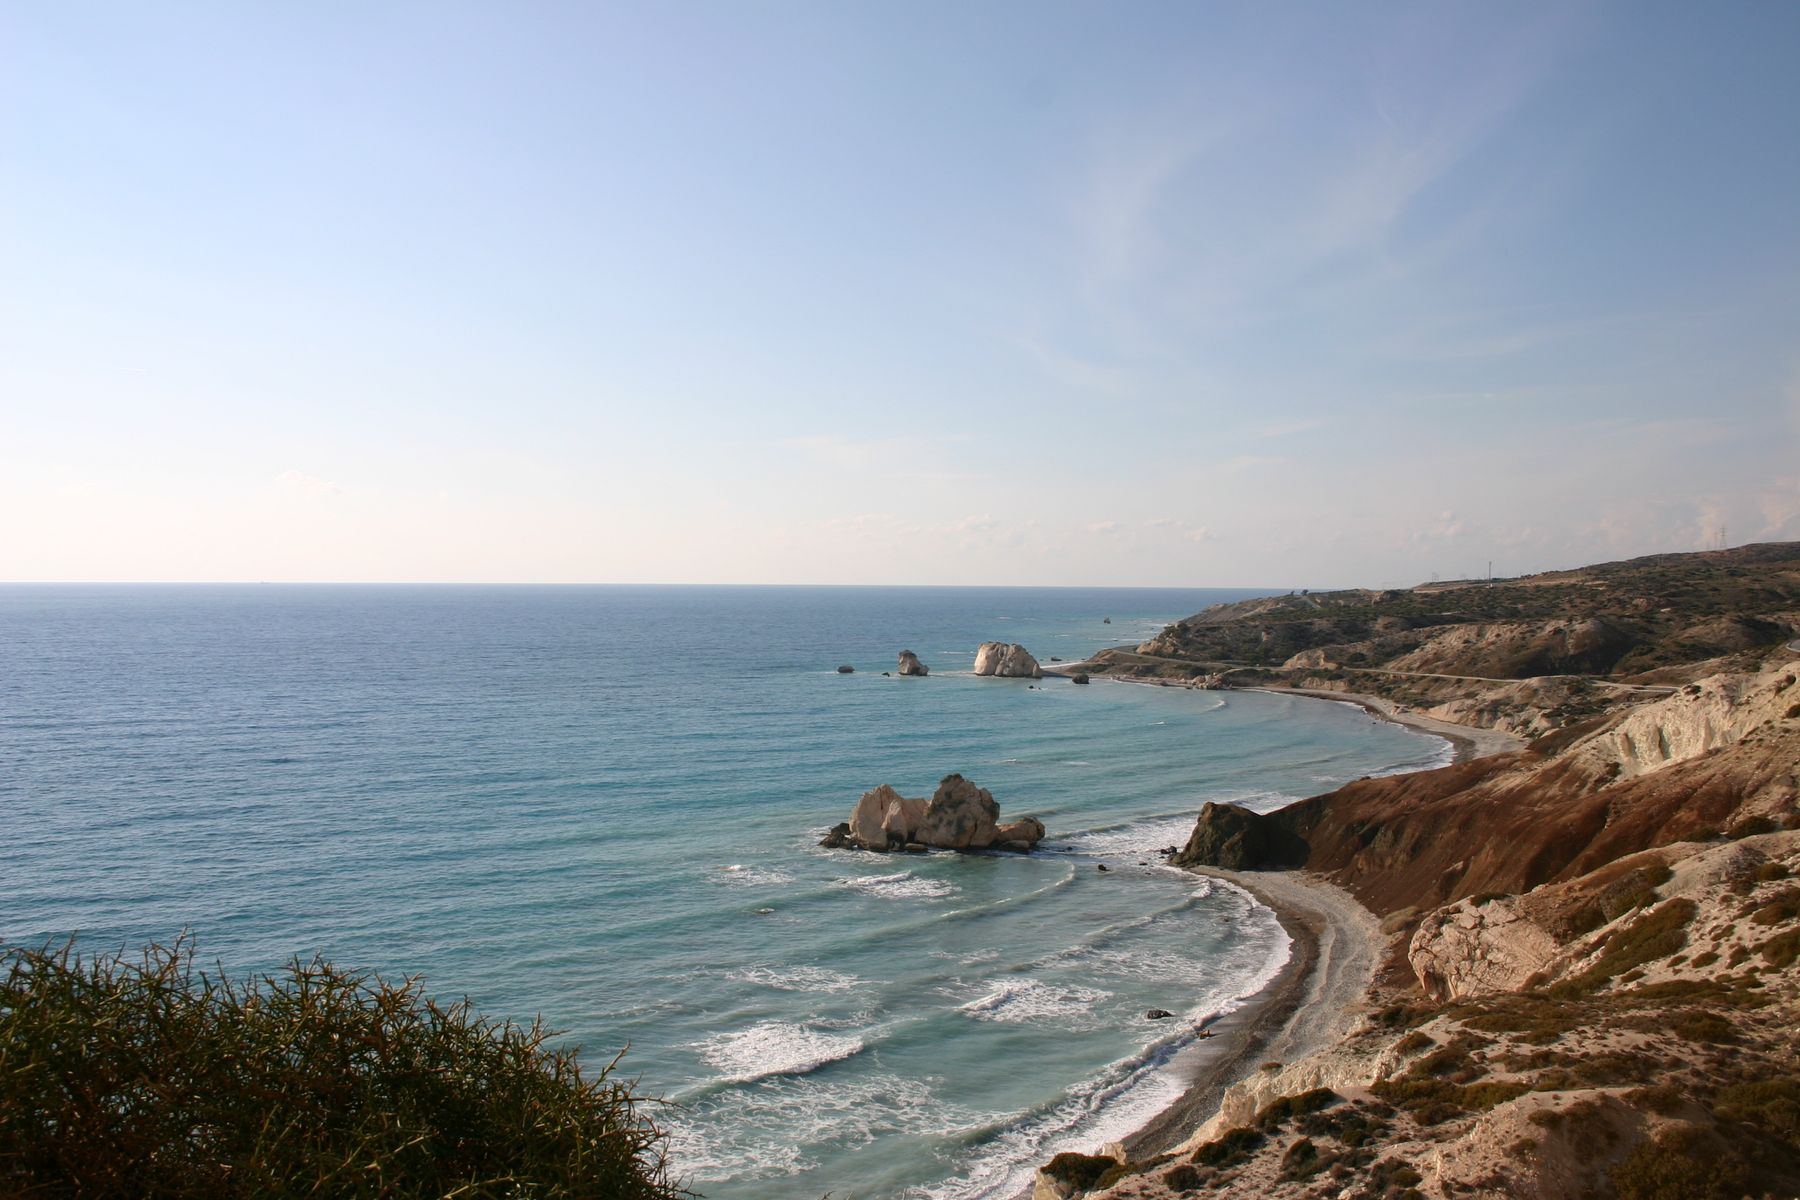 Paphos is hot in October - cool off in the sea